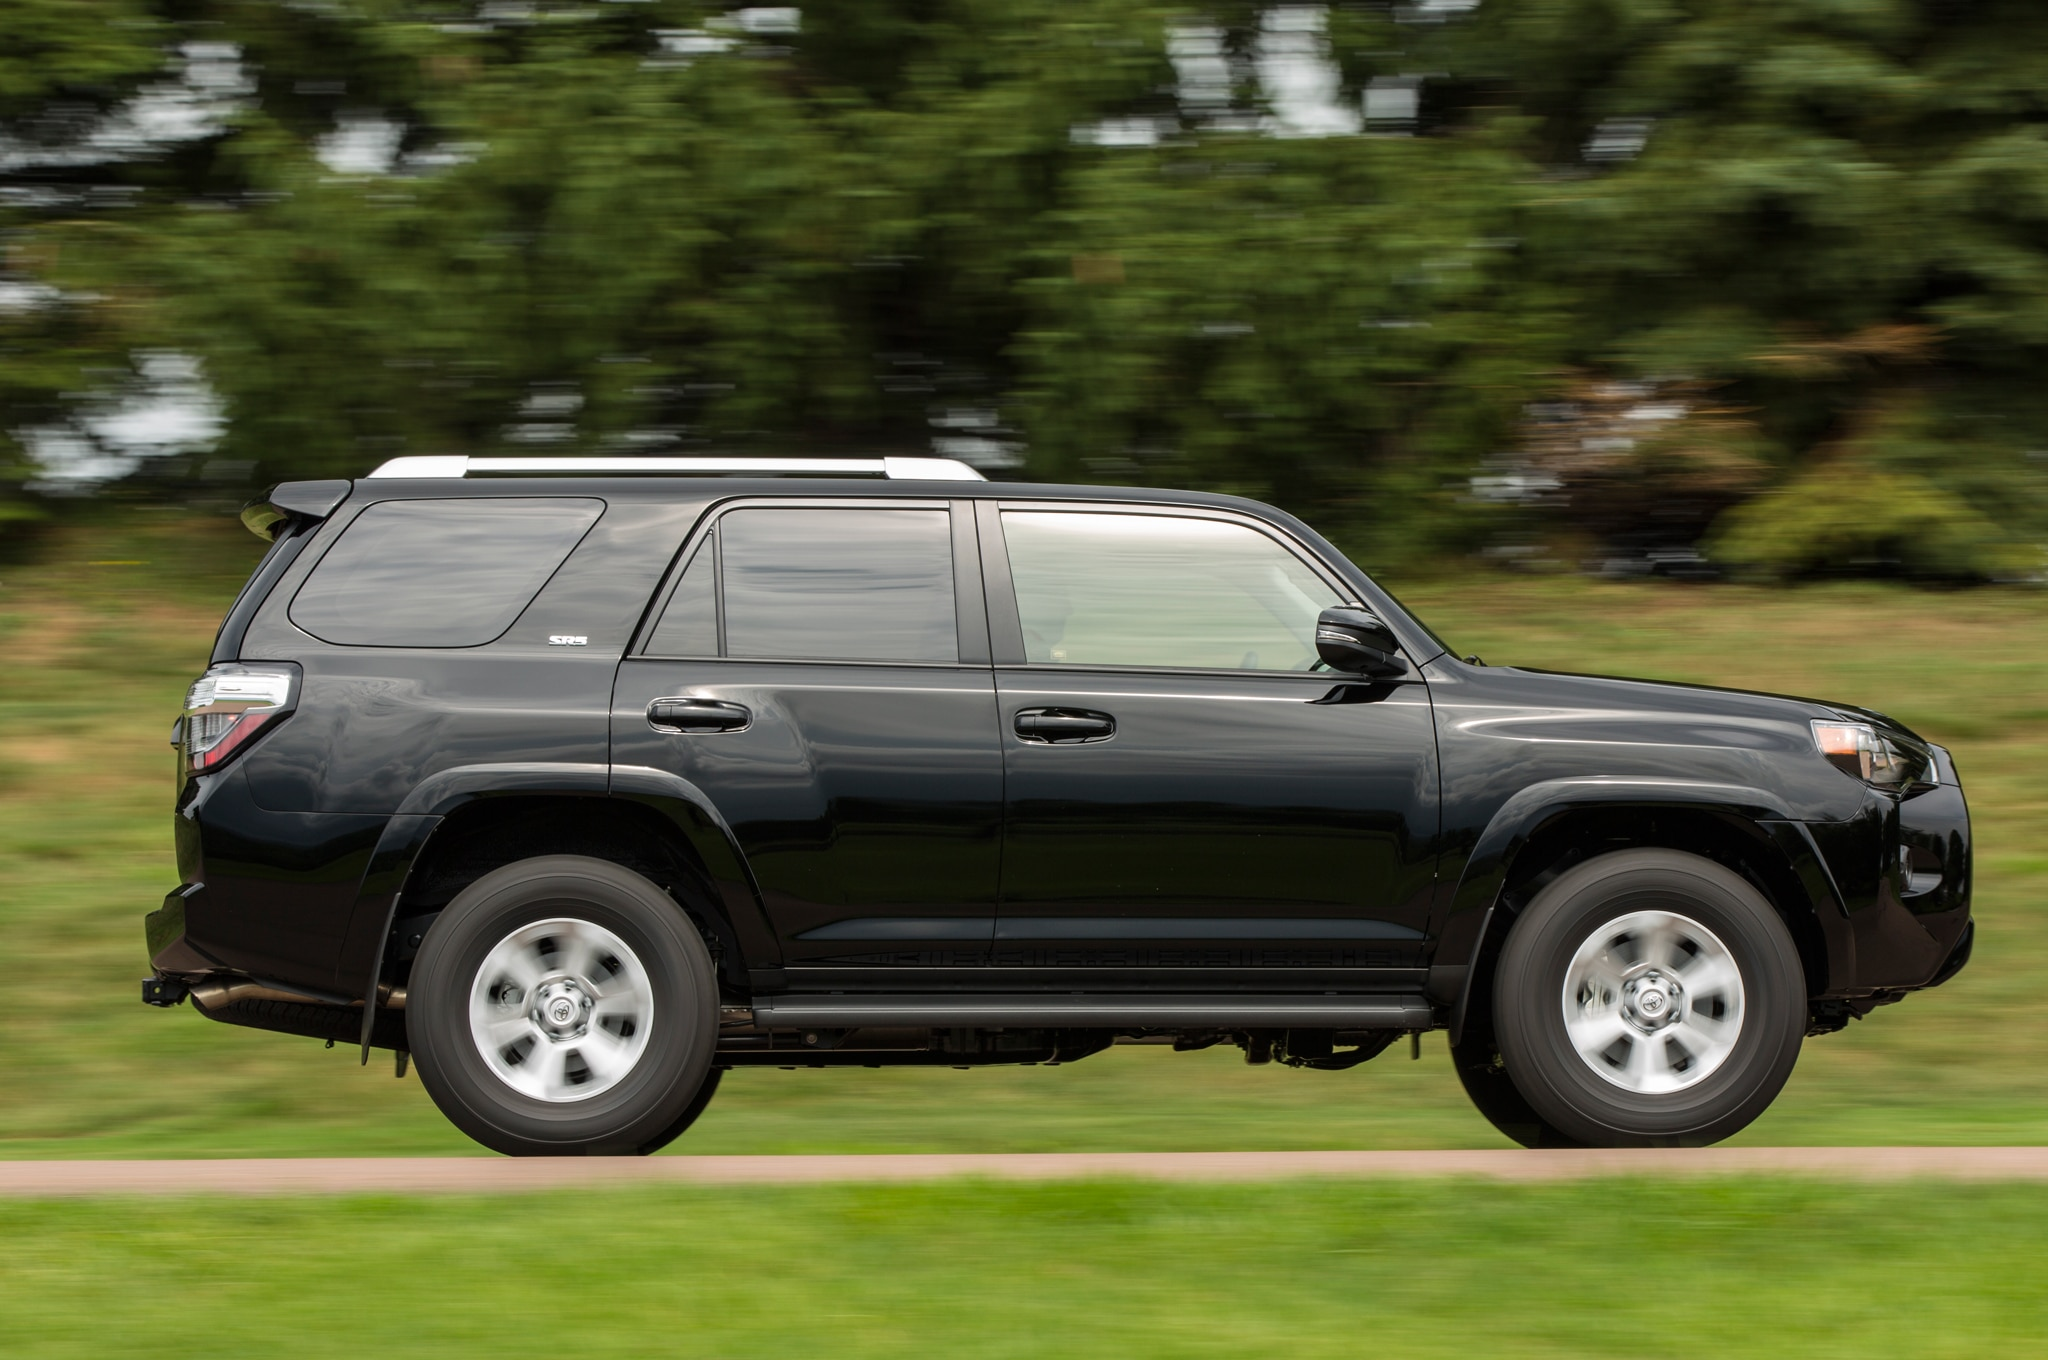 2014 toyota 4runner discounted in celebration of 30th anniversary automobile magazine. Black Bedroom Furniture Sets. Home Design Ideas